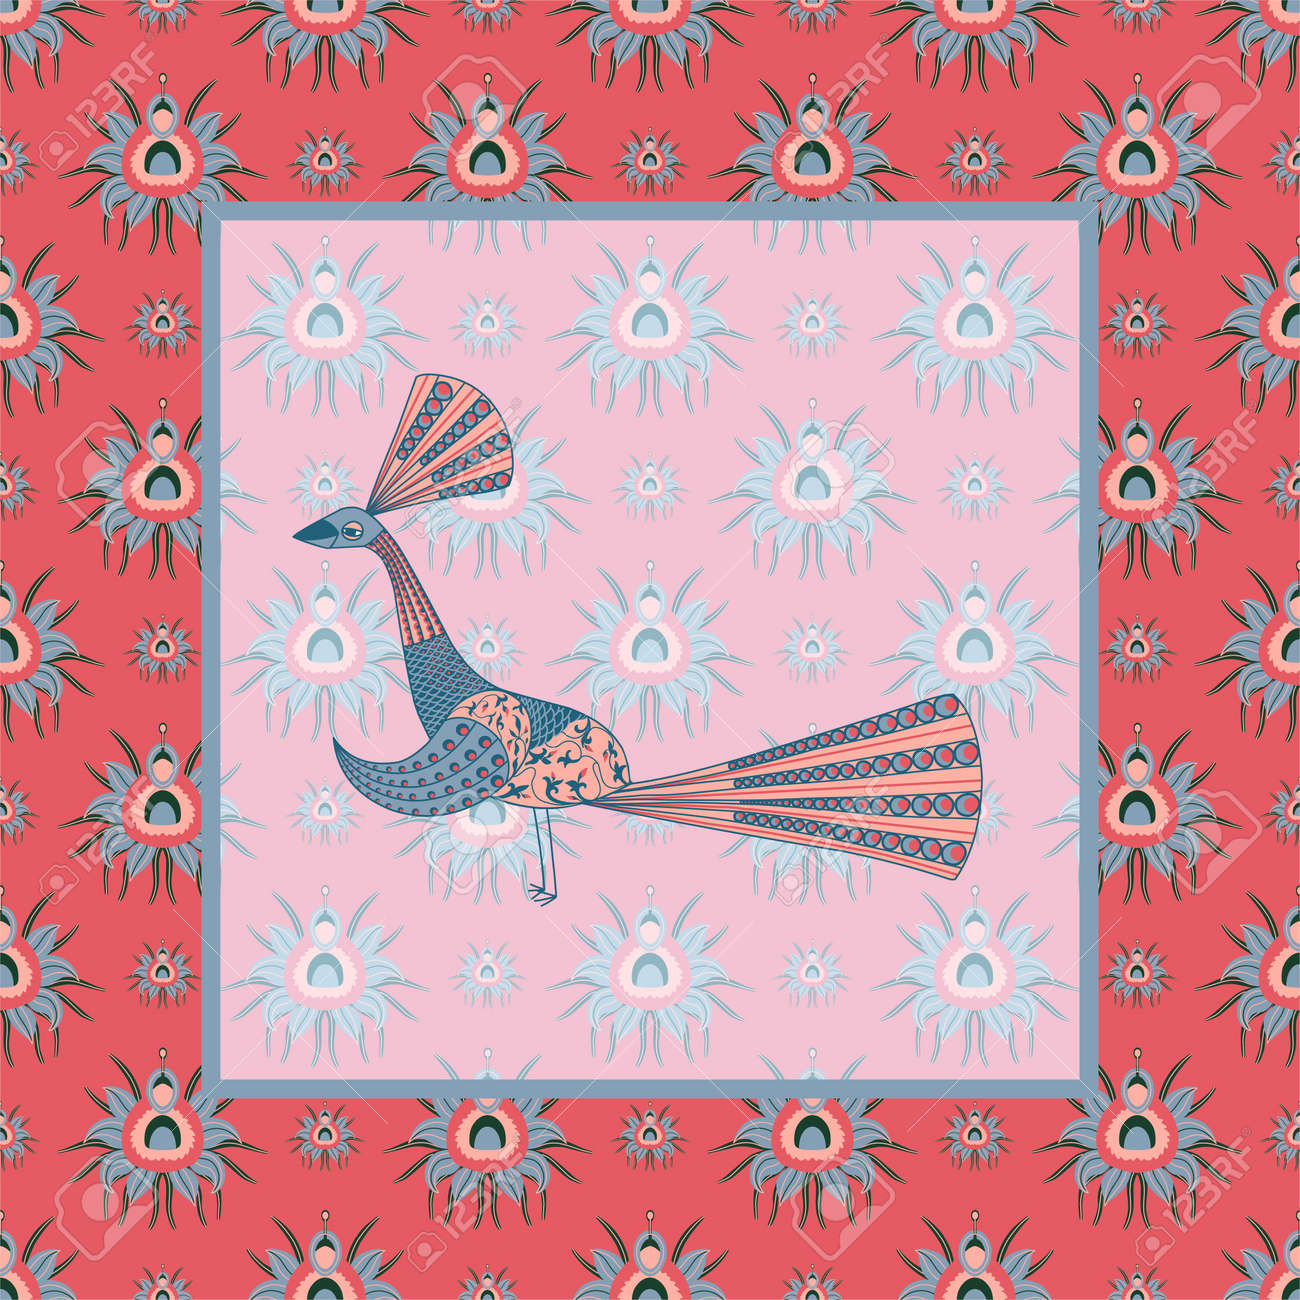 Pattern with CHRYSANTHEMES AND PEACCO. PATTERN IN CHINESE STYLE. STYLIZED PEACOCK. Vector illustration. - 168195318